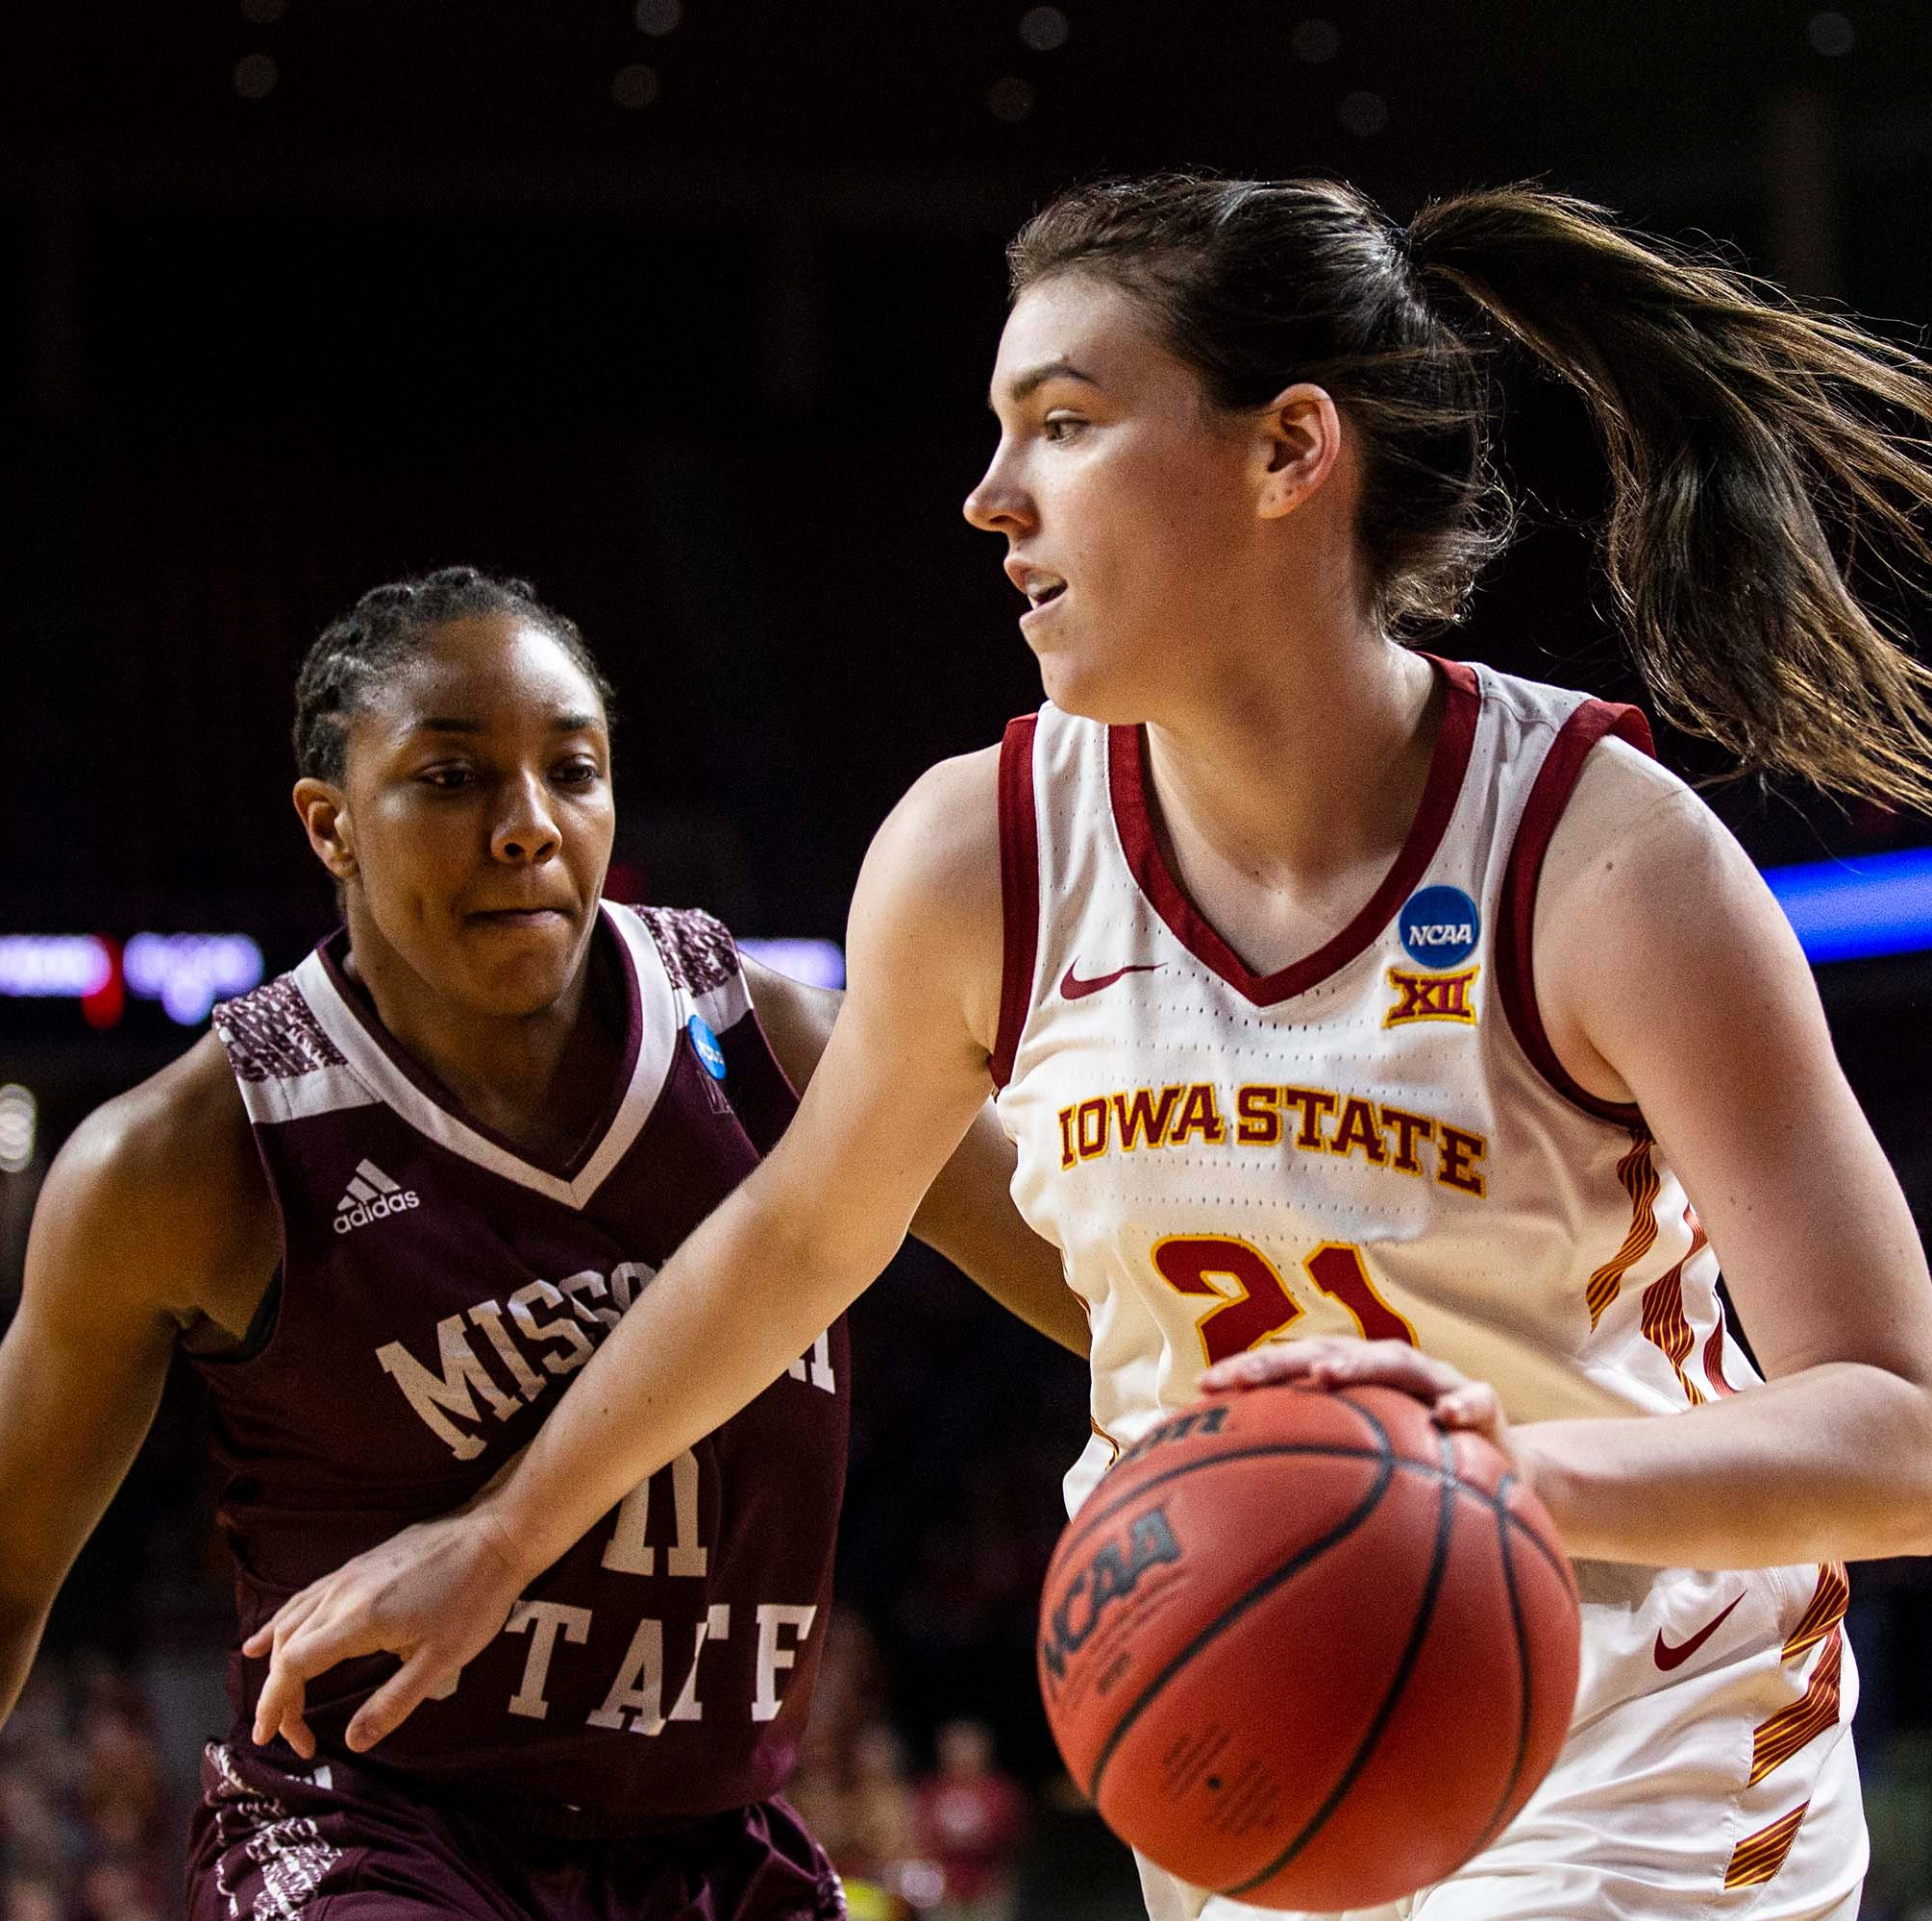 Former Iowa State star Bridget Carleton earns roster spot on WNBA's Connecticut Sun